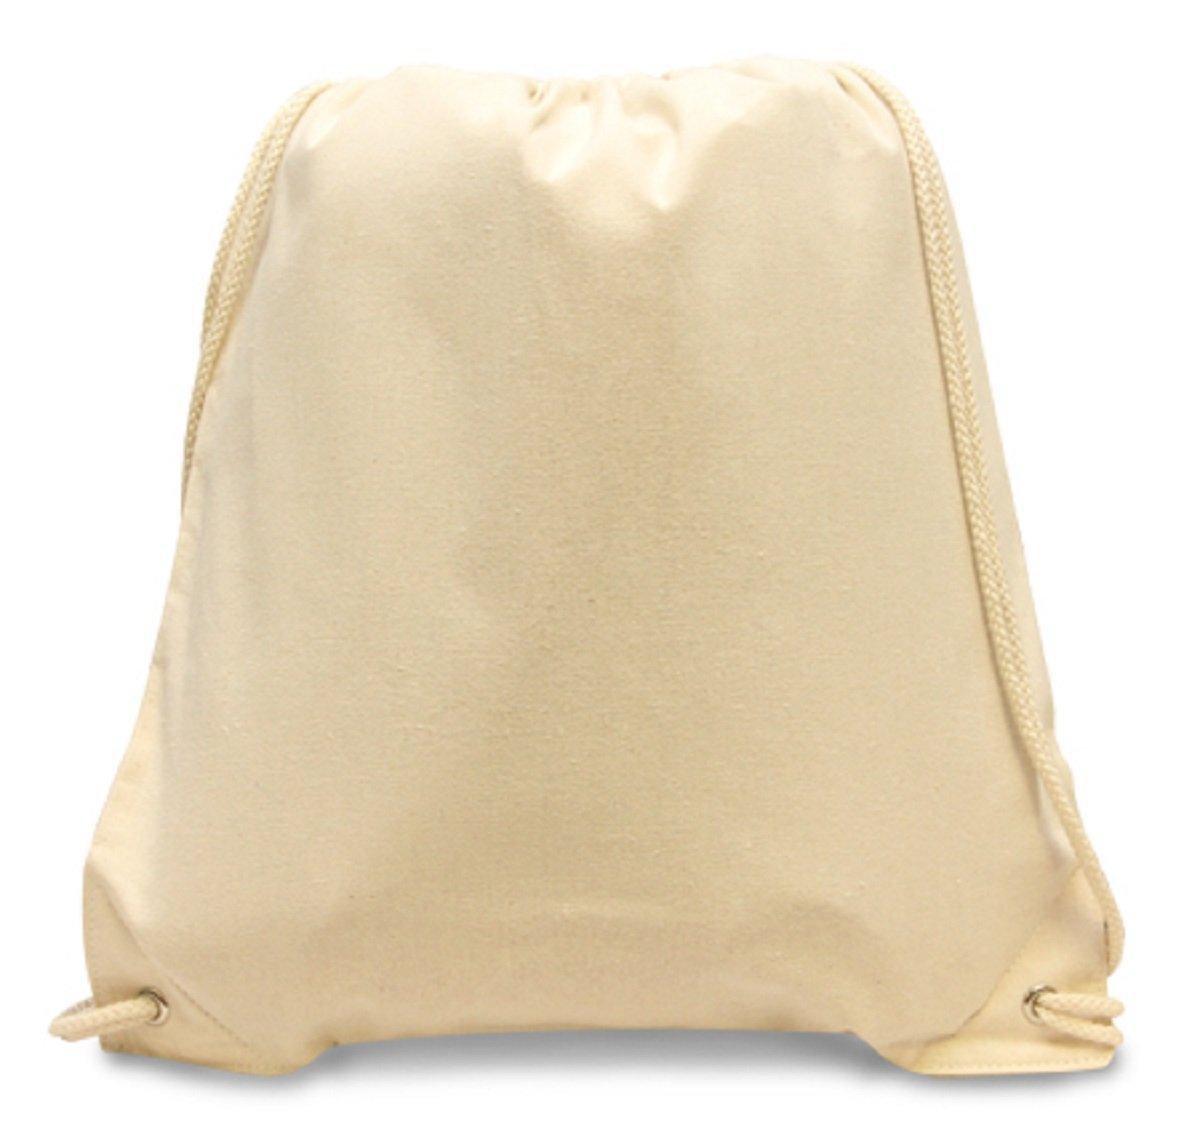 COTTON CANVAS DRAWSTRING, Natural, Case of 72 by DollarItemDirect